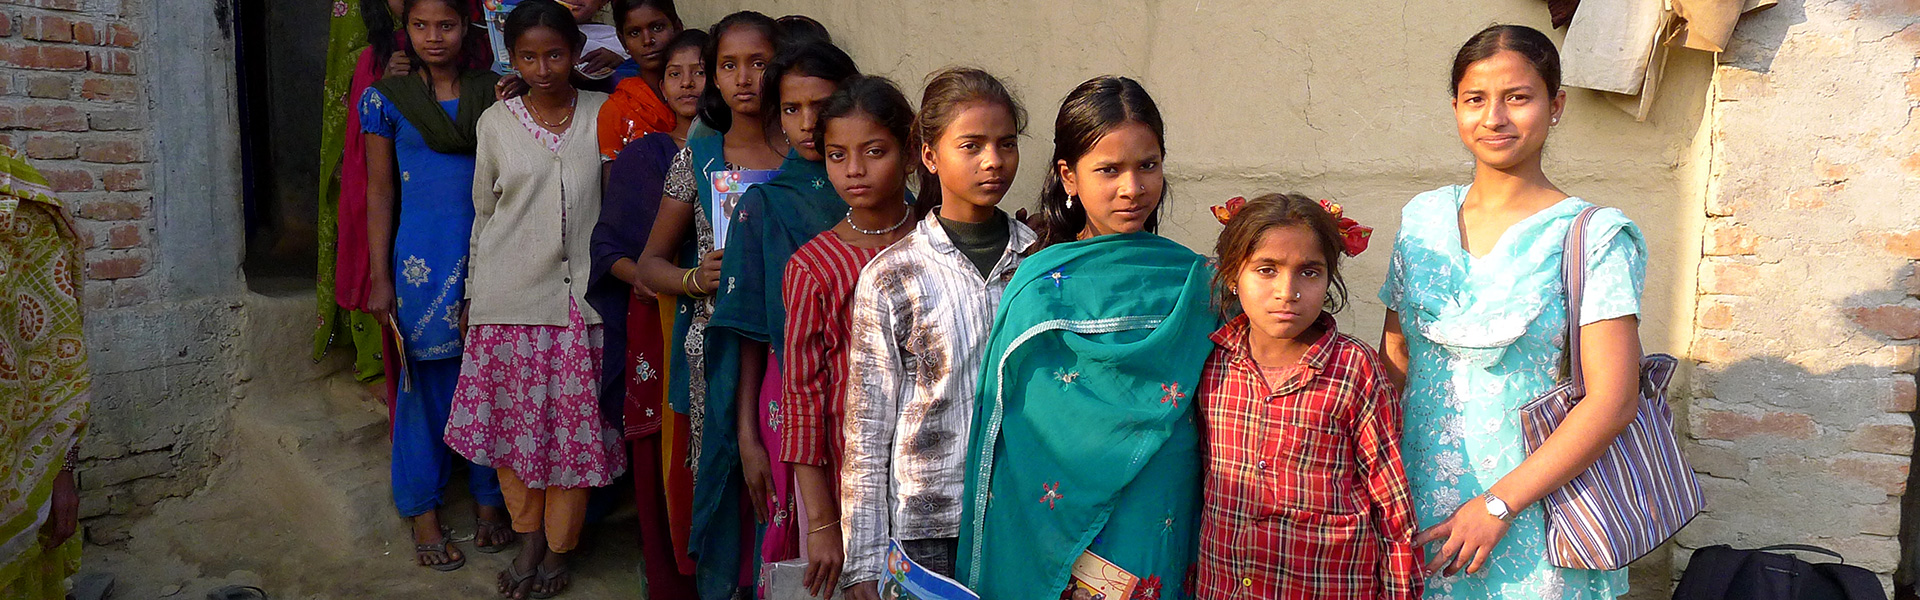 nepal-samvad-girls-group-with-animator